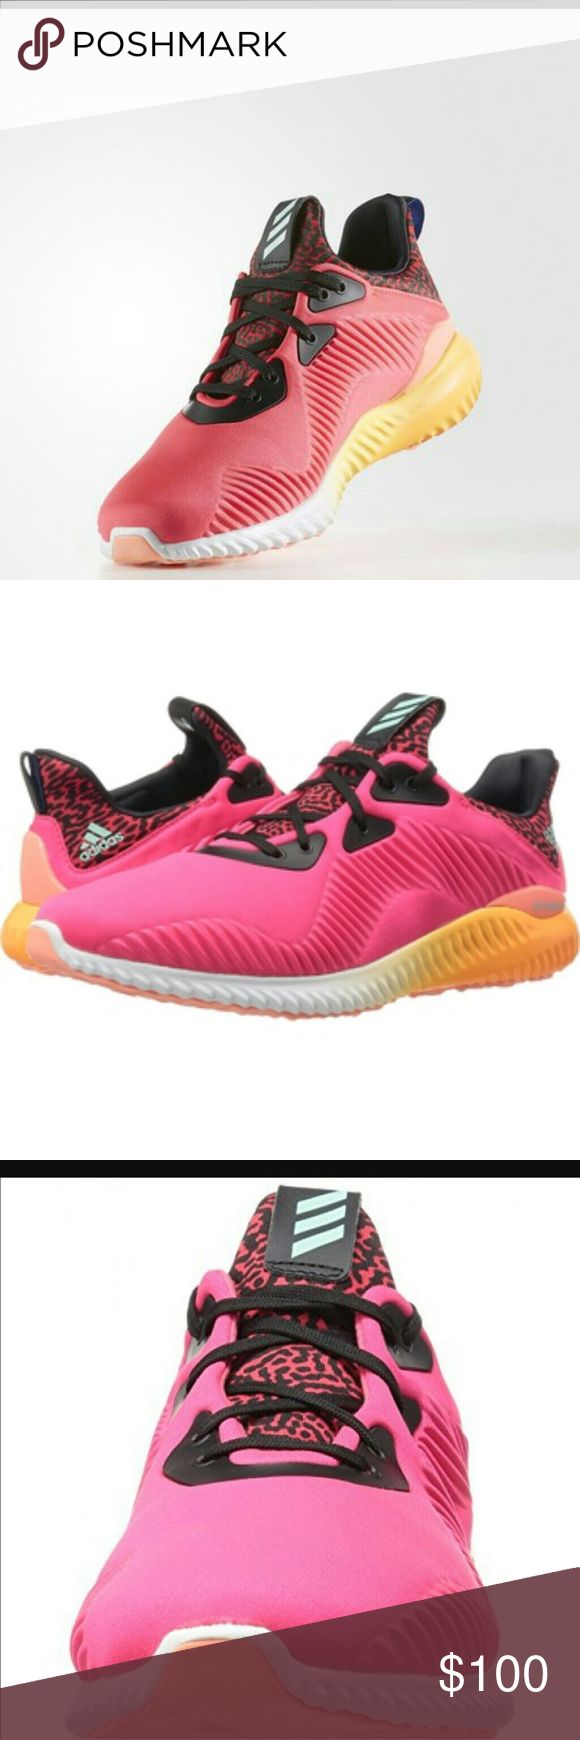 Adidas Running Shoes Brand new in box Size 7.5 Open to offers  Turn heads on the street and at the gym in the sleek design and dynamic cushioning of the adidas Alpha Bounce running shoe! Adidas Shoes Athletic Shoes